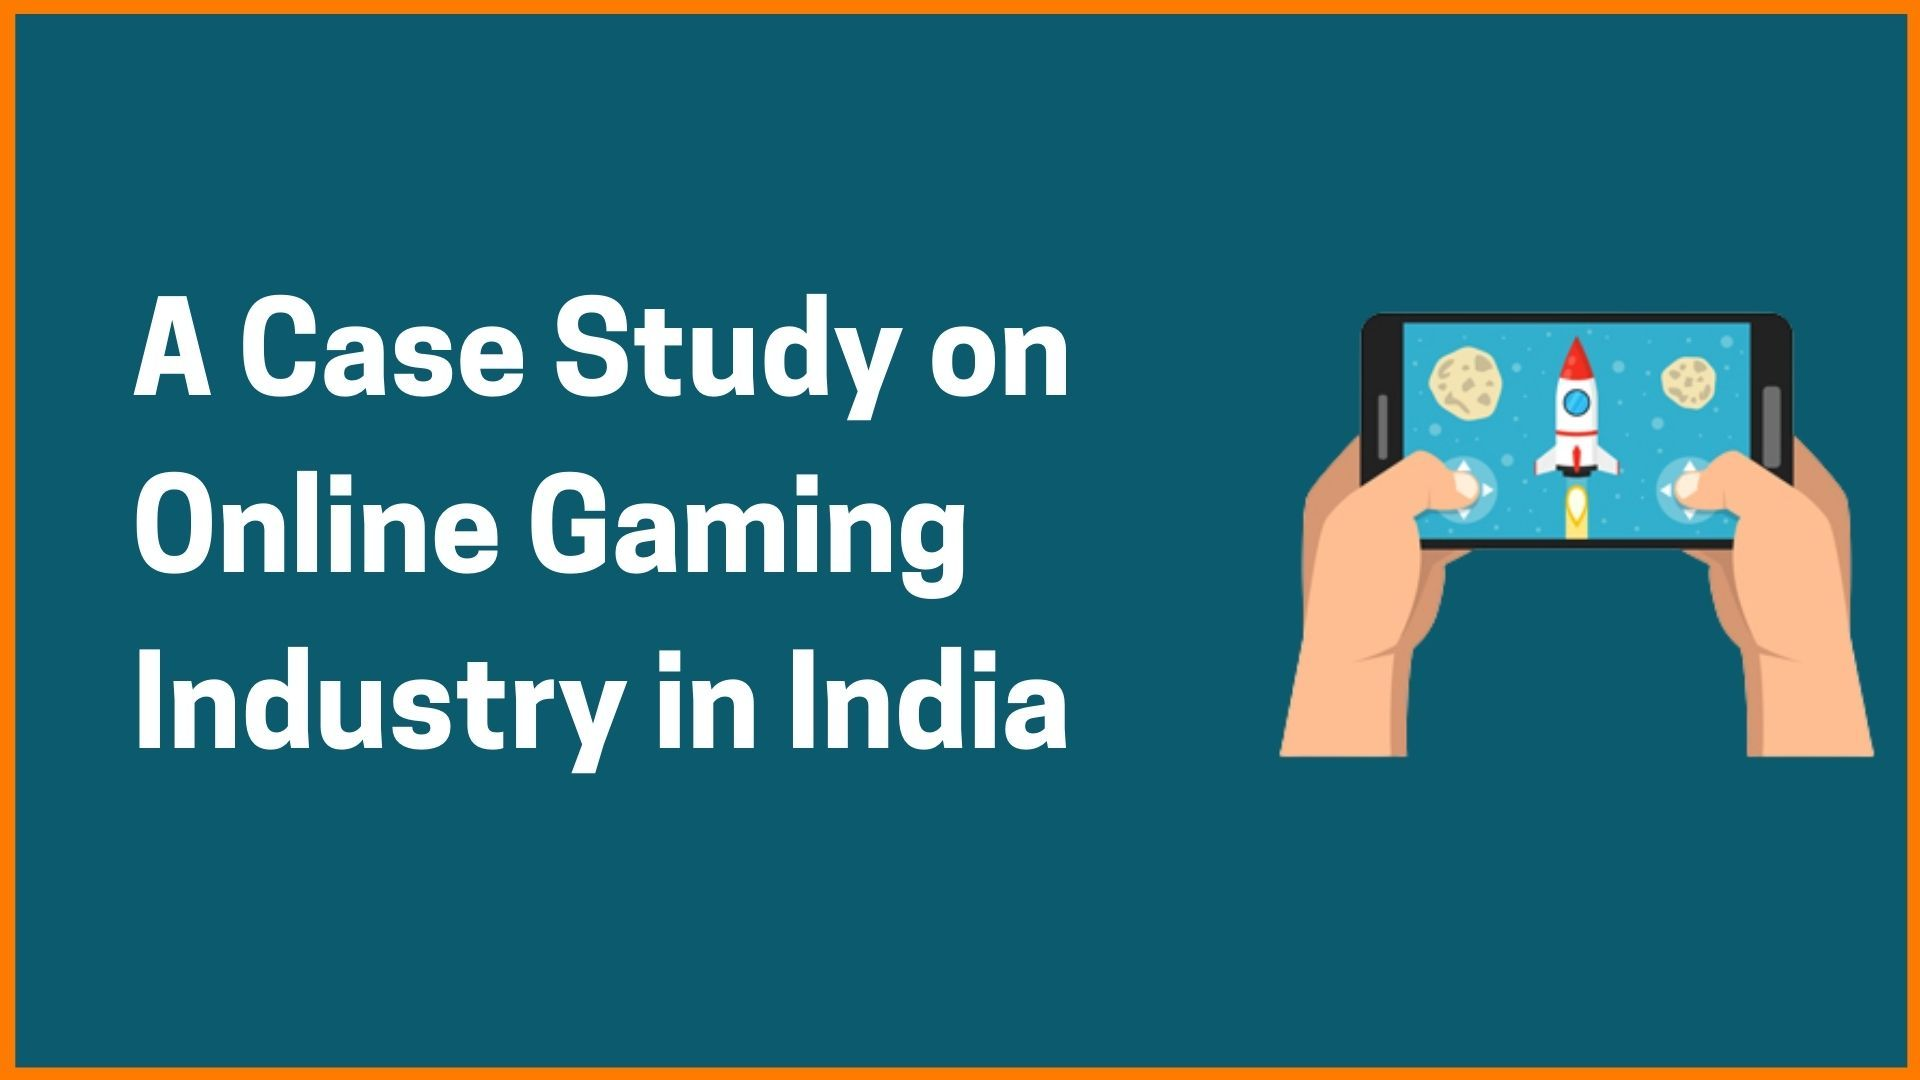 The Online Gaming Industry in India [Case Study]